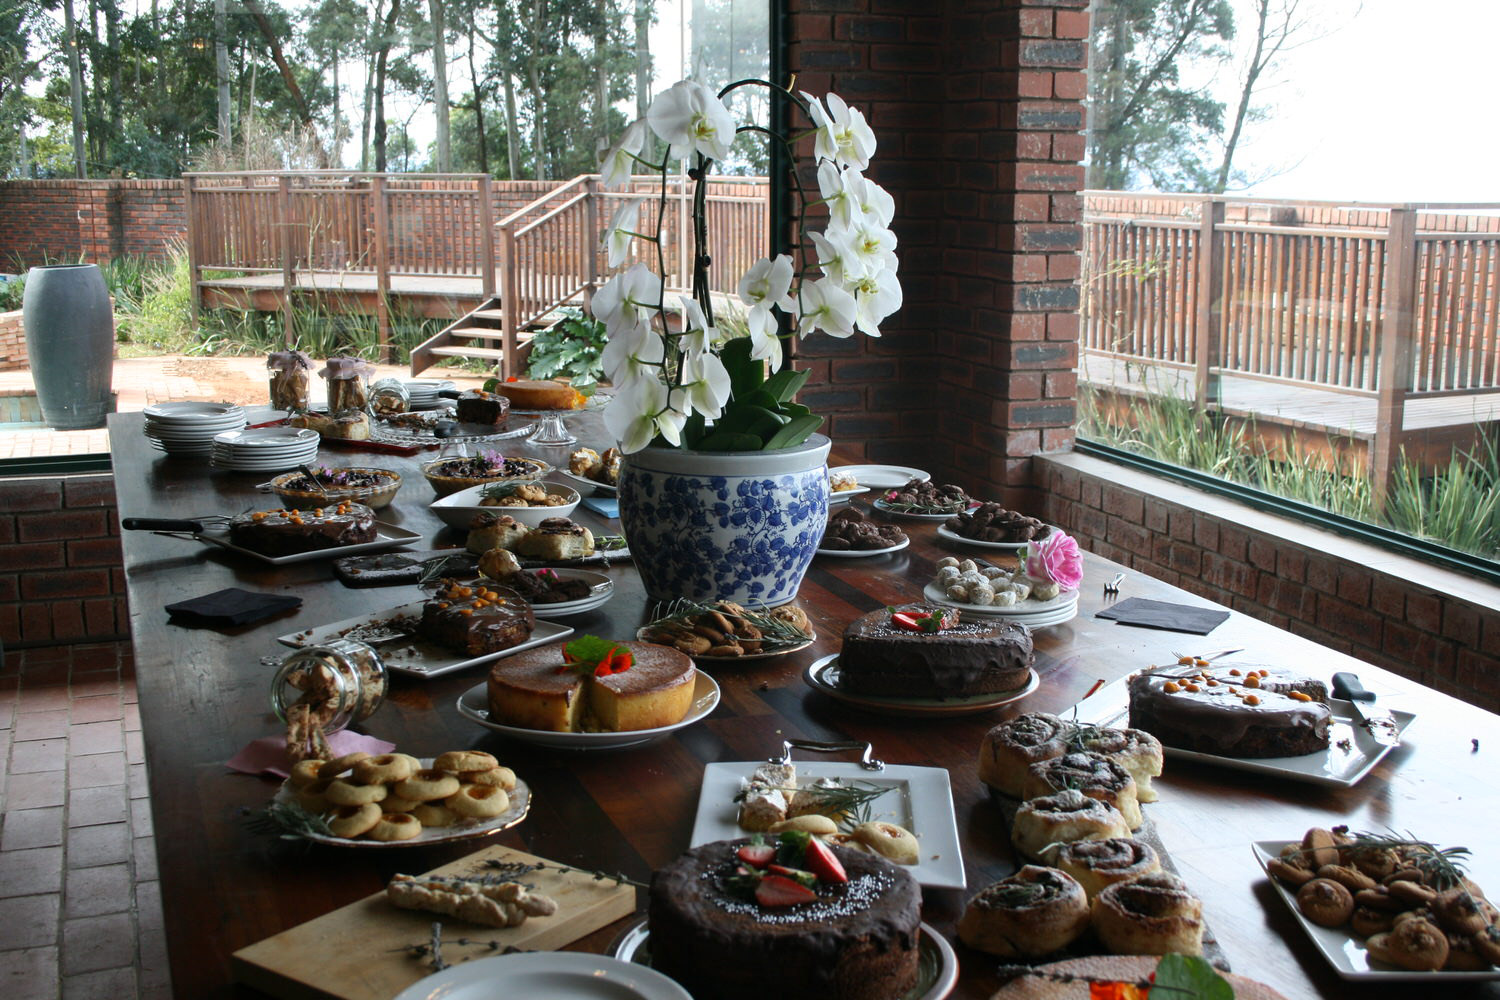 baking-with-jackie-cameron-launch-44.JPG